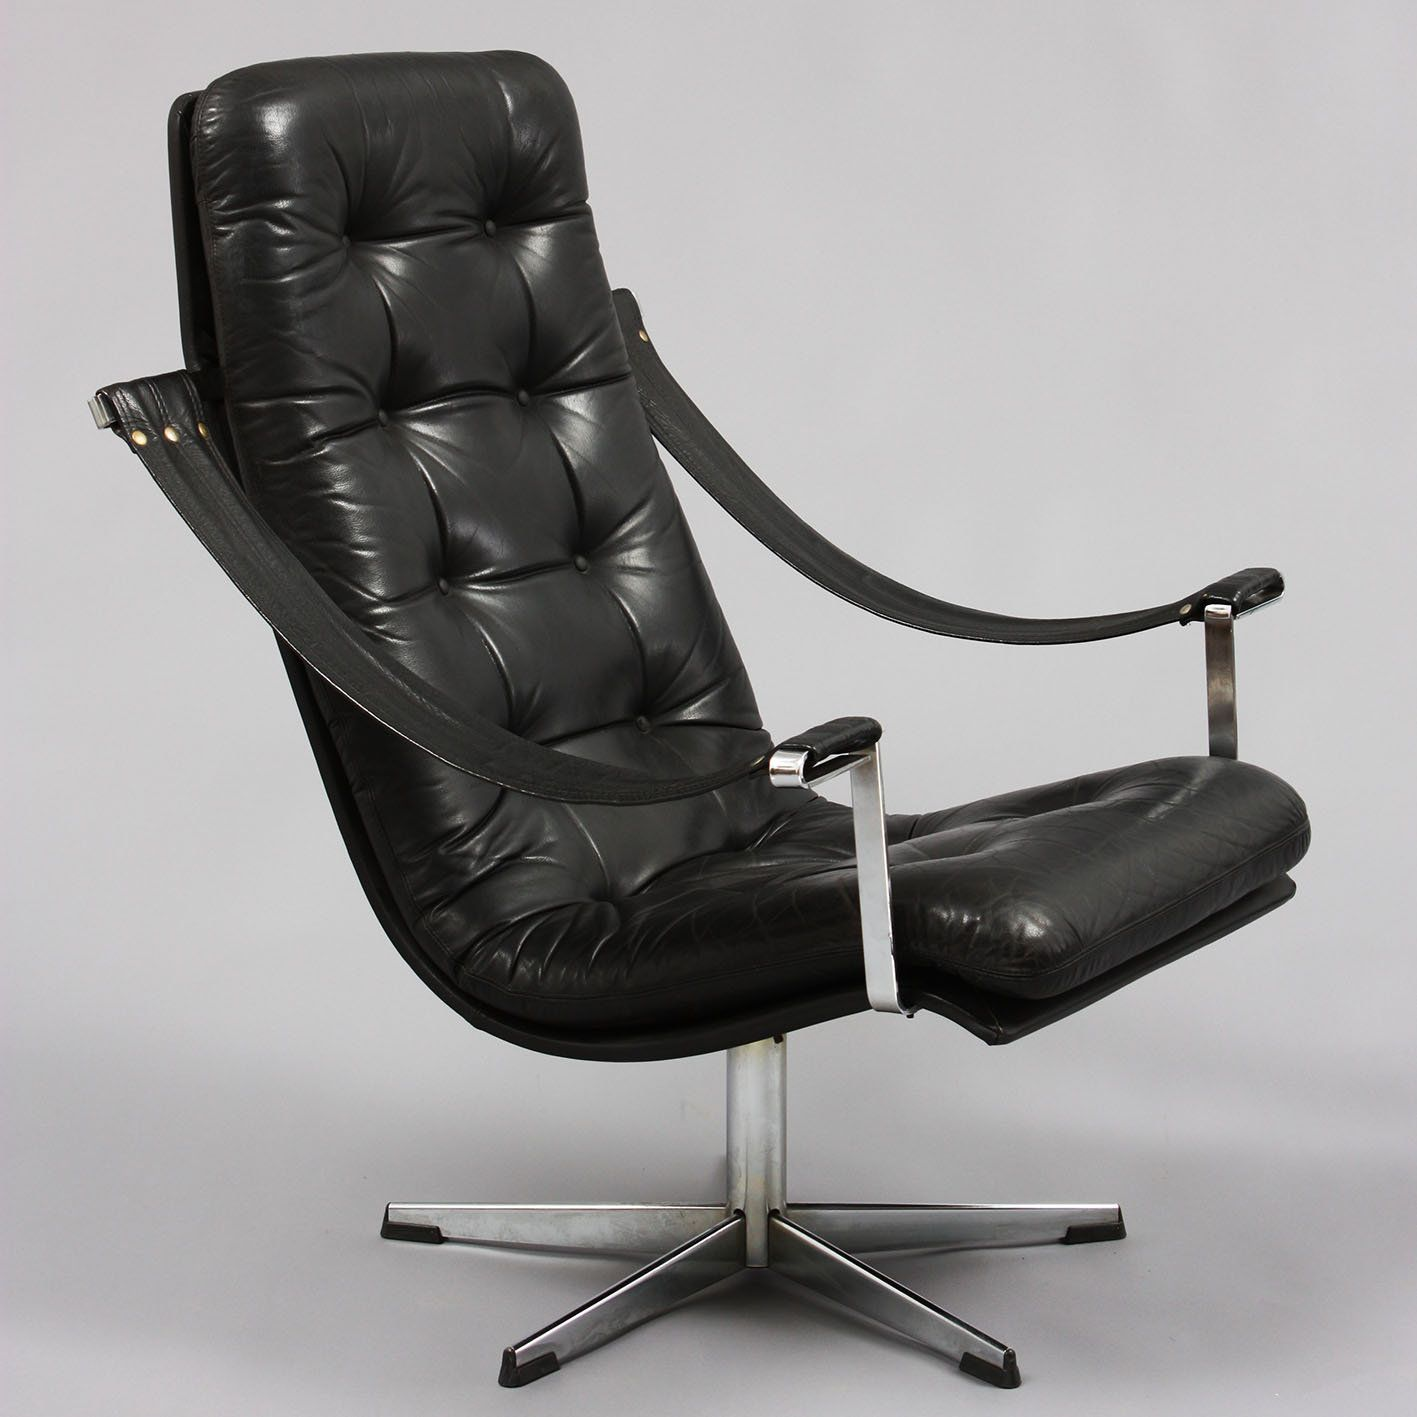 Metal And Leather Chair Geoffrey Harcourt Chromed Metal And Leather Lounge Chair